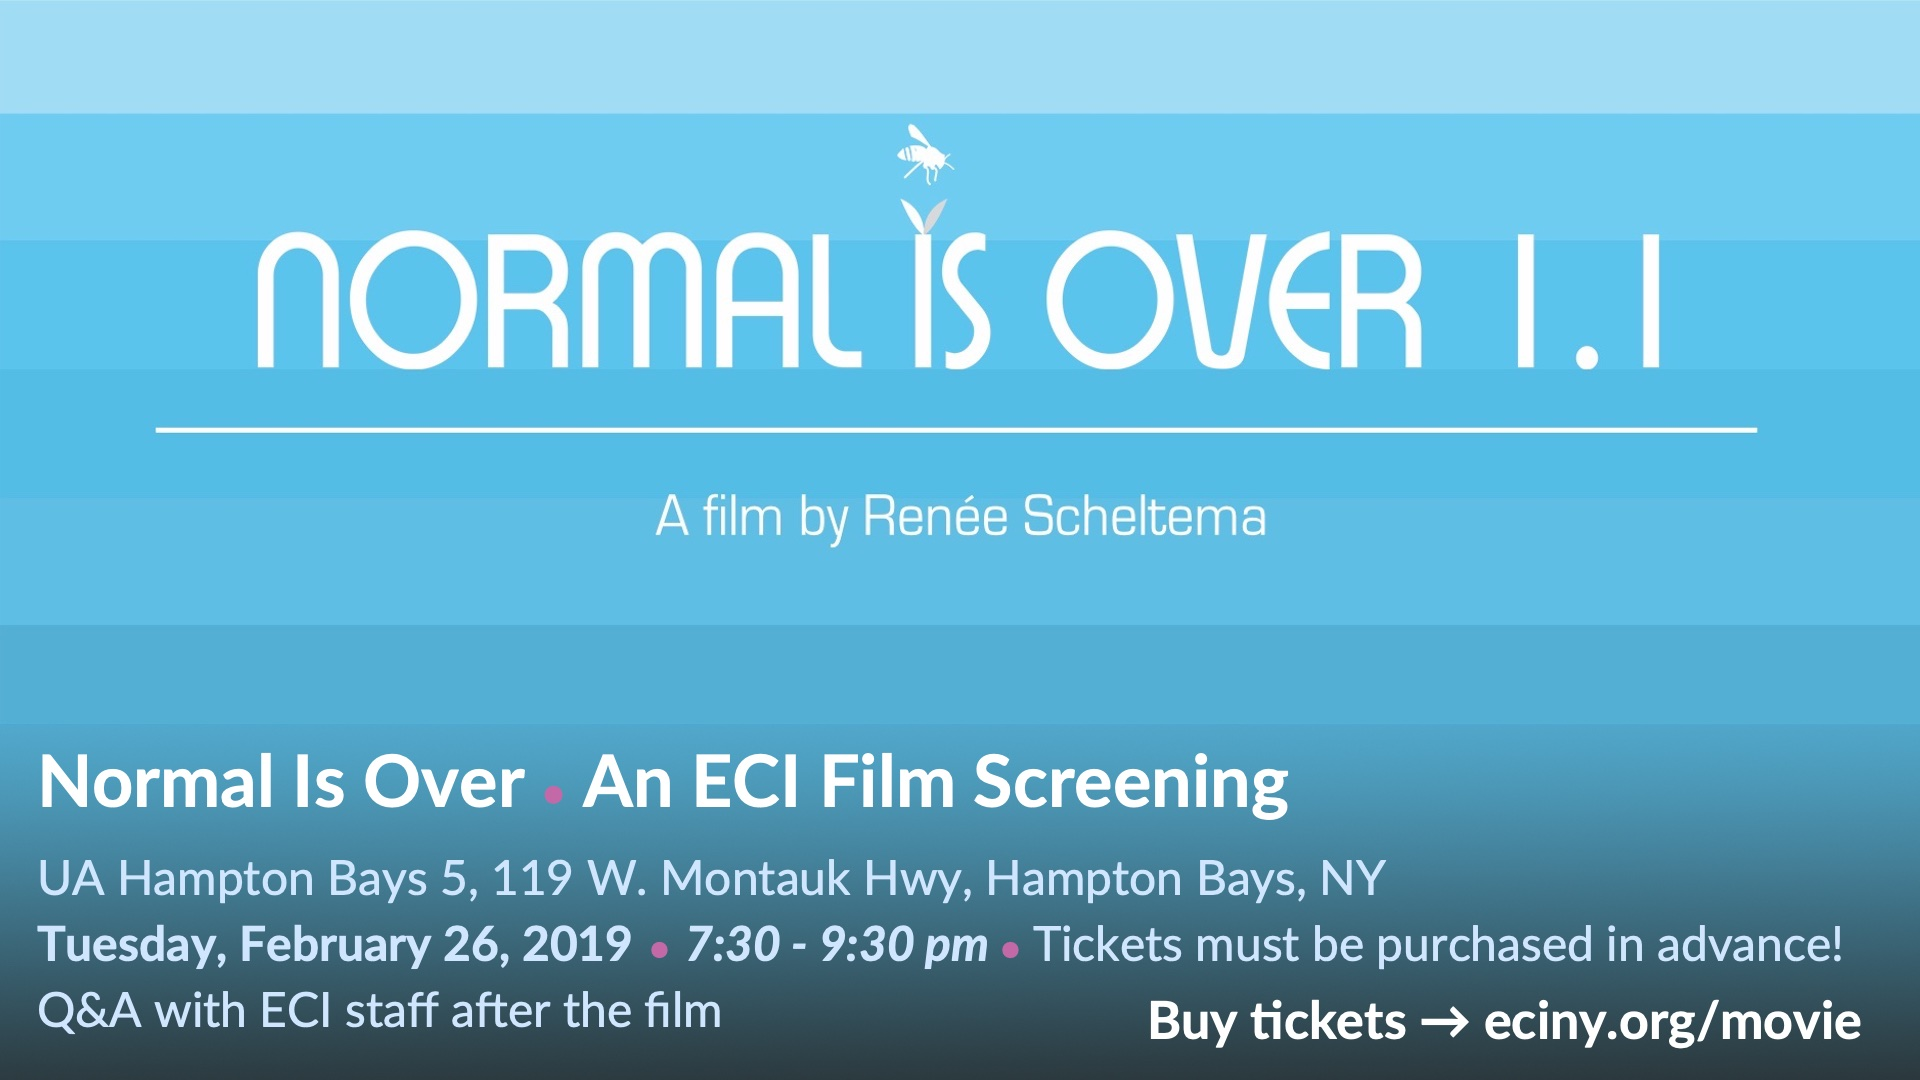 Normal Is Over film screening - Feb 26th, 2019 - FB cover 1920x1080.jpg